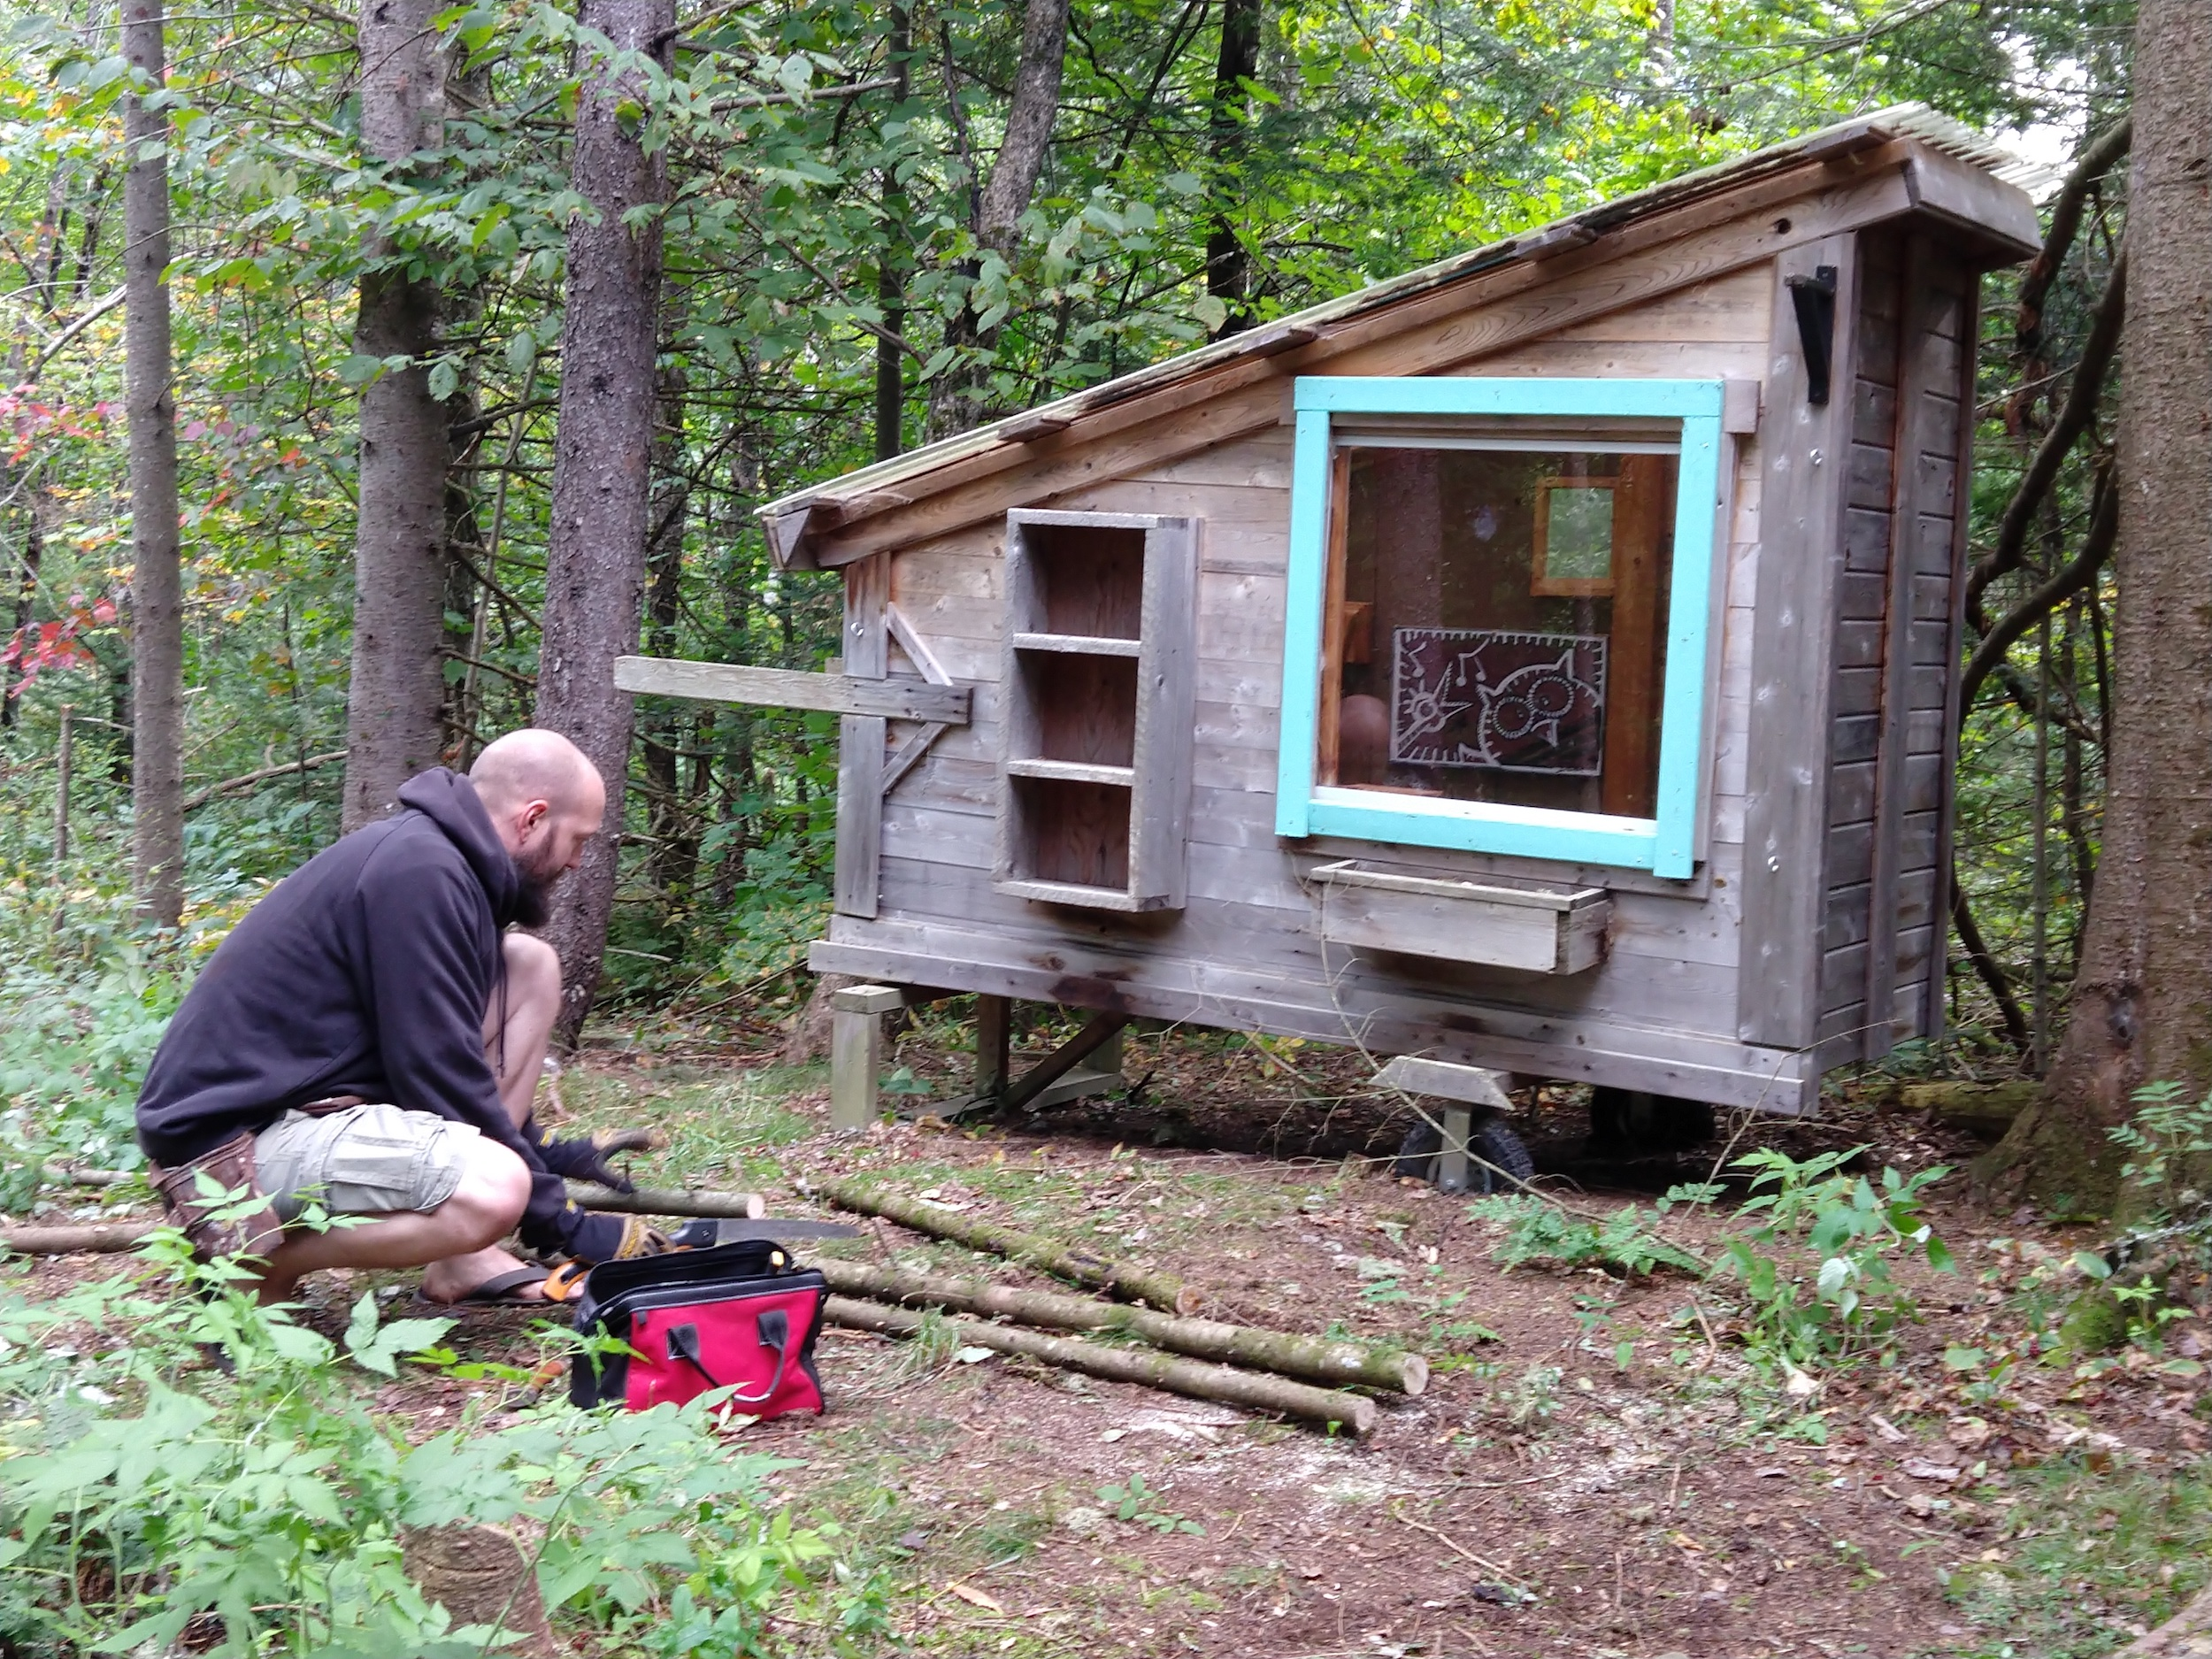 In Northeast Kingdom Woods, Tiny Home Enthusiasts Leave Behind Collection